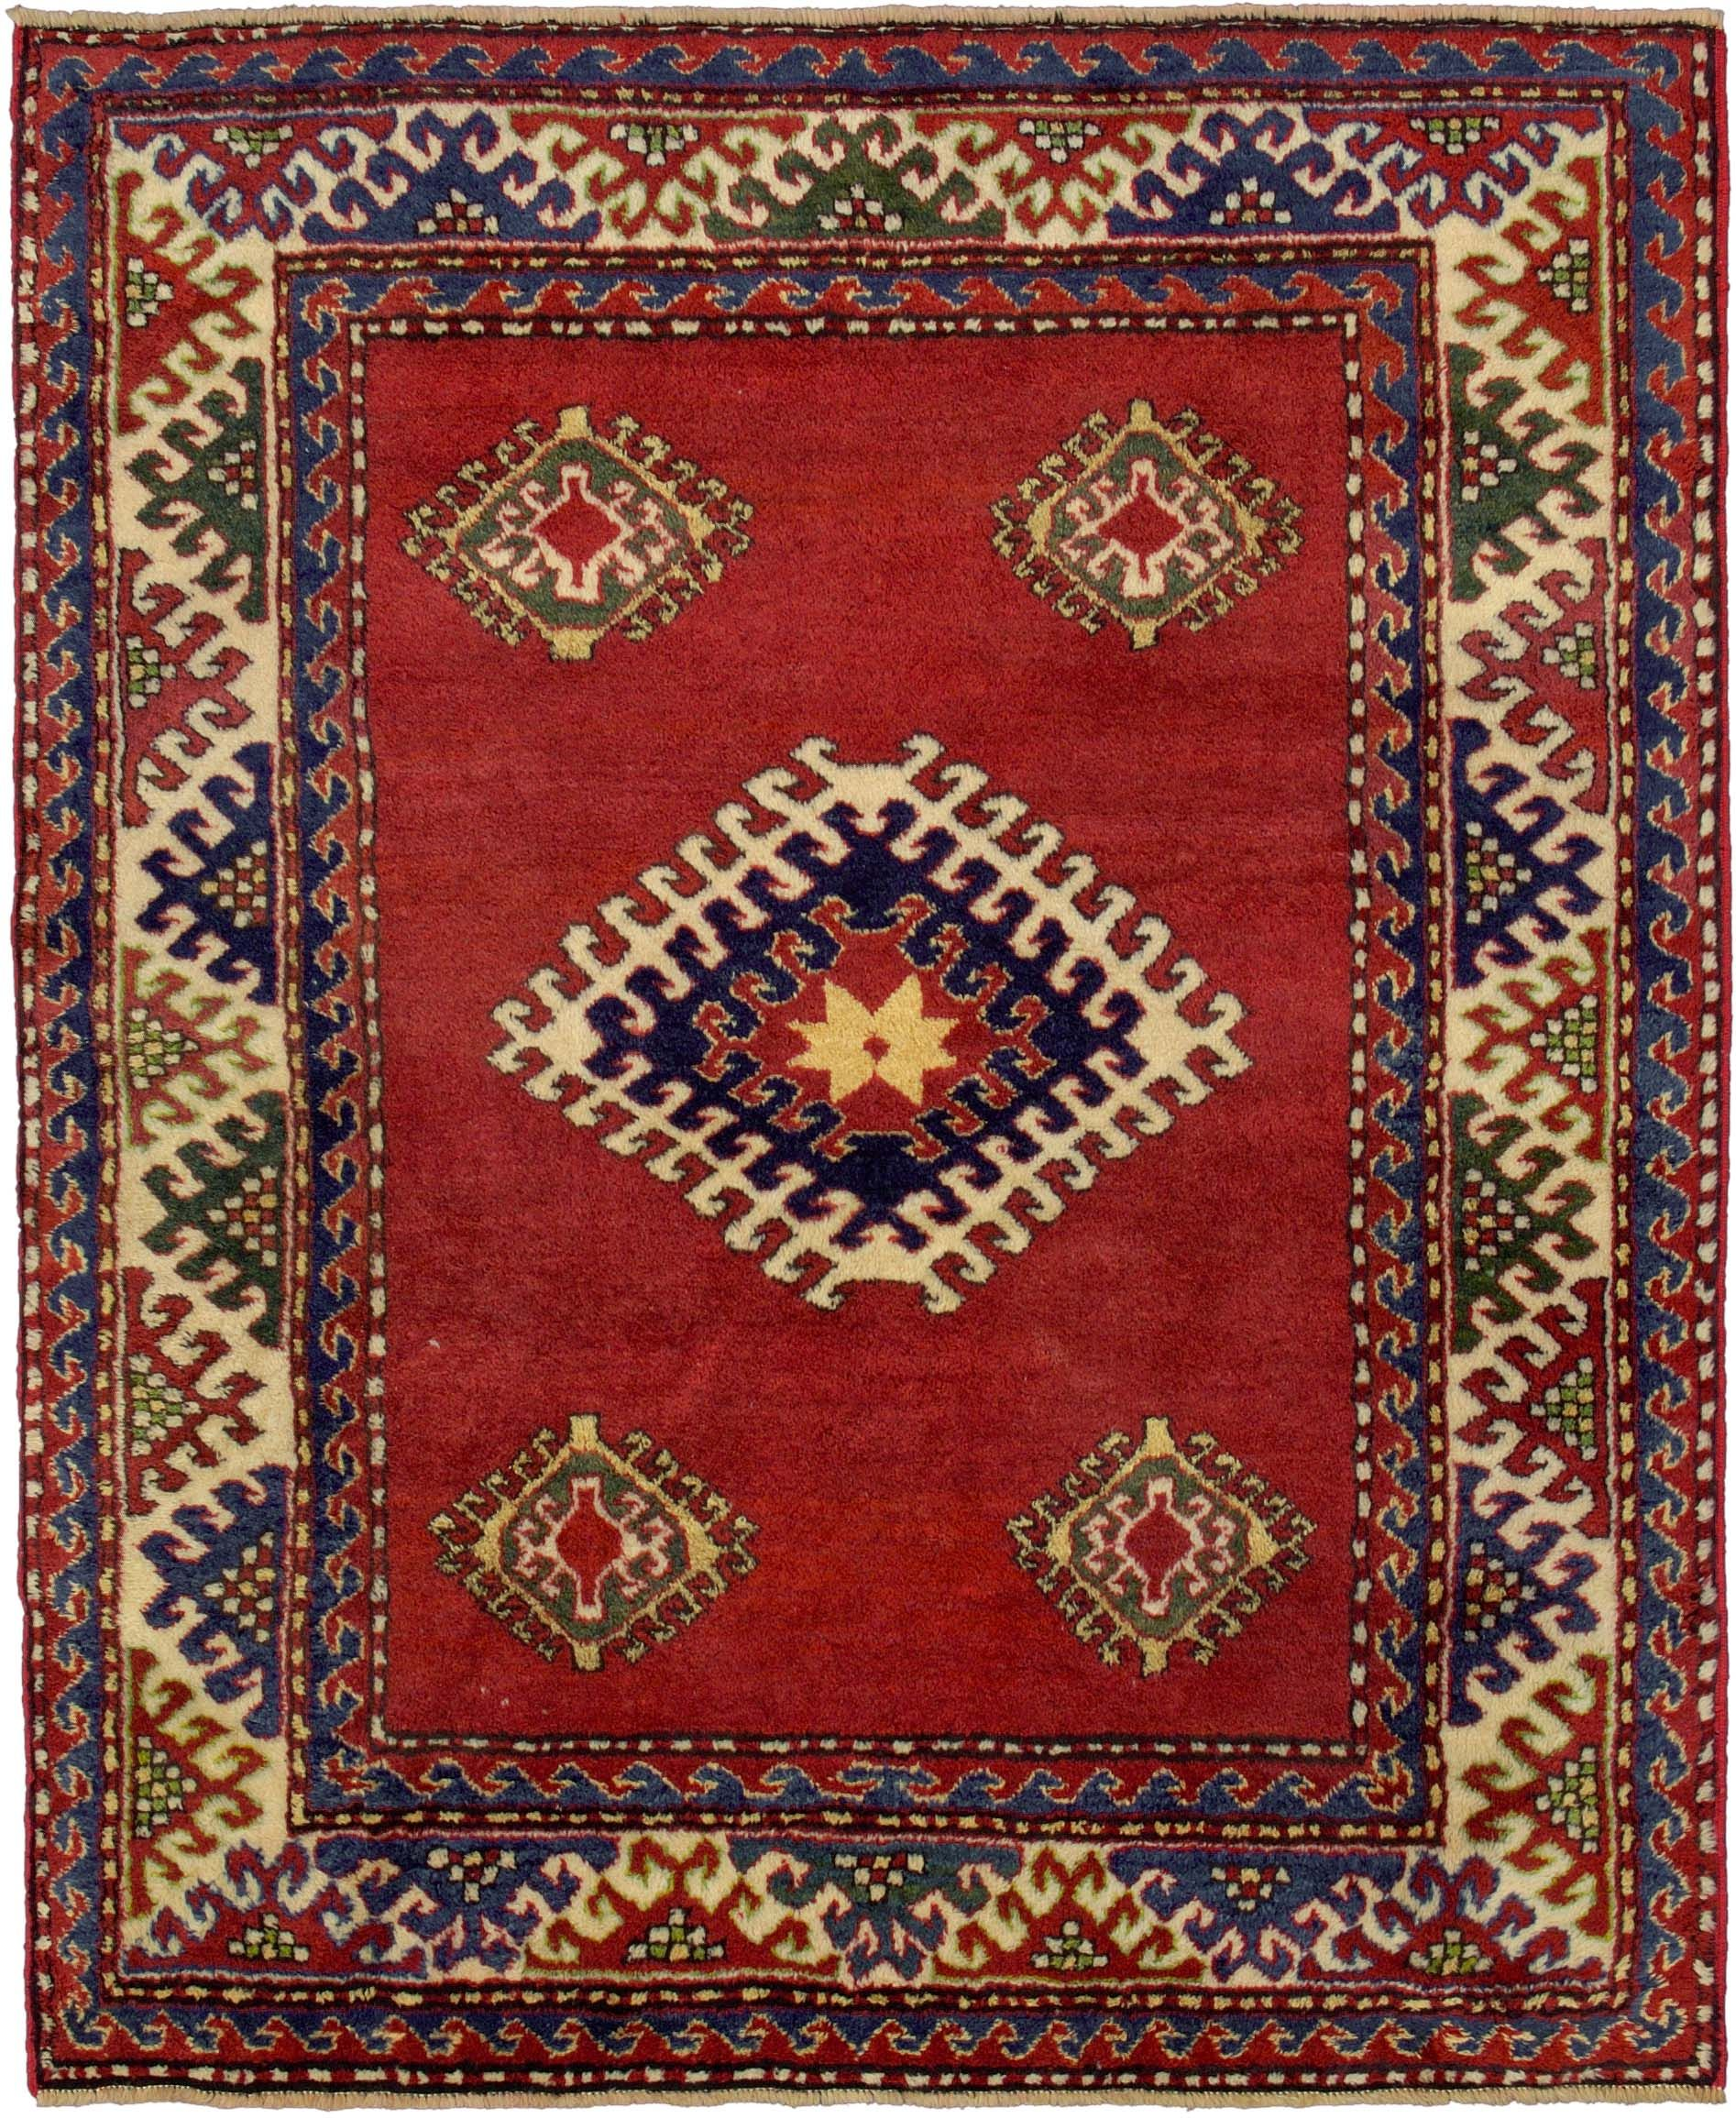 Looking For The Best Top Rated Handmade Hand Knotted Traditional Antique Style Persian Geometric Bordjalou Kazak Oriental Rug